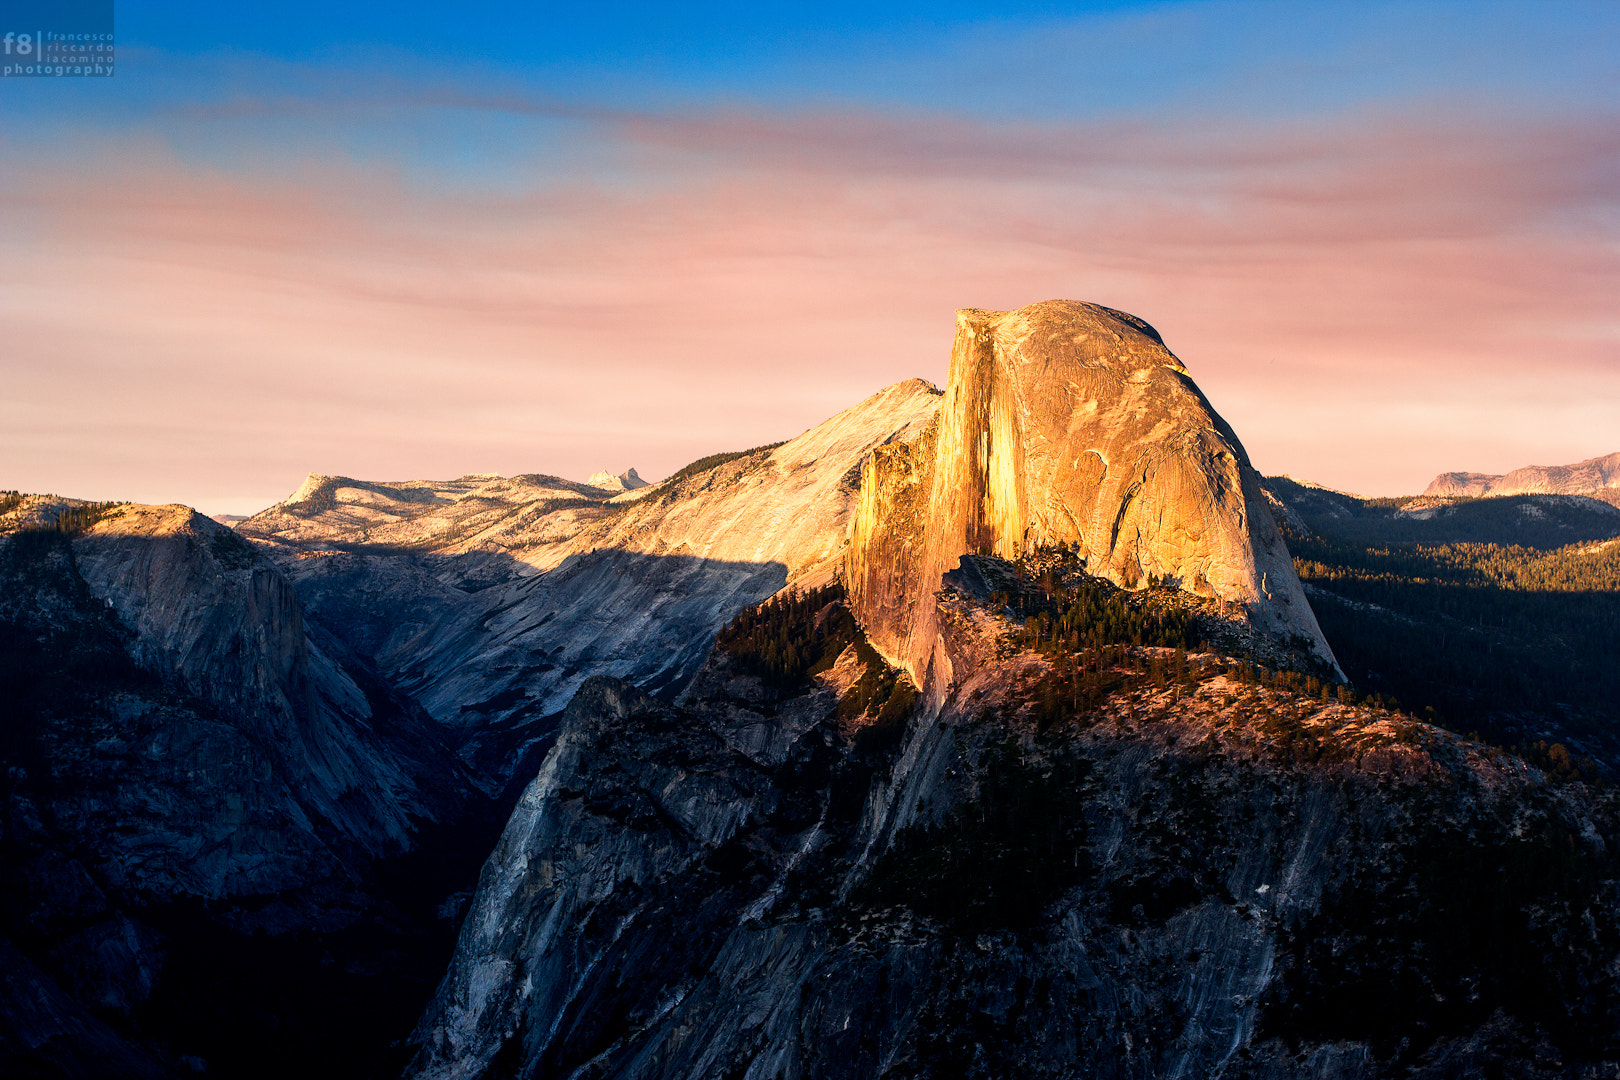 Photograph Half Dome - Glacier Point by Francesco Riccardo Iacomino on 500px